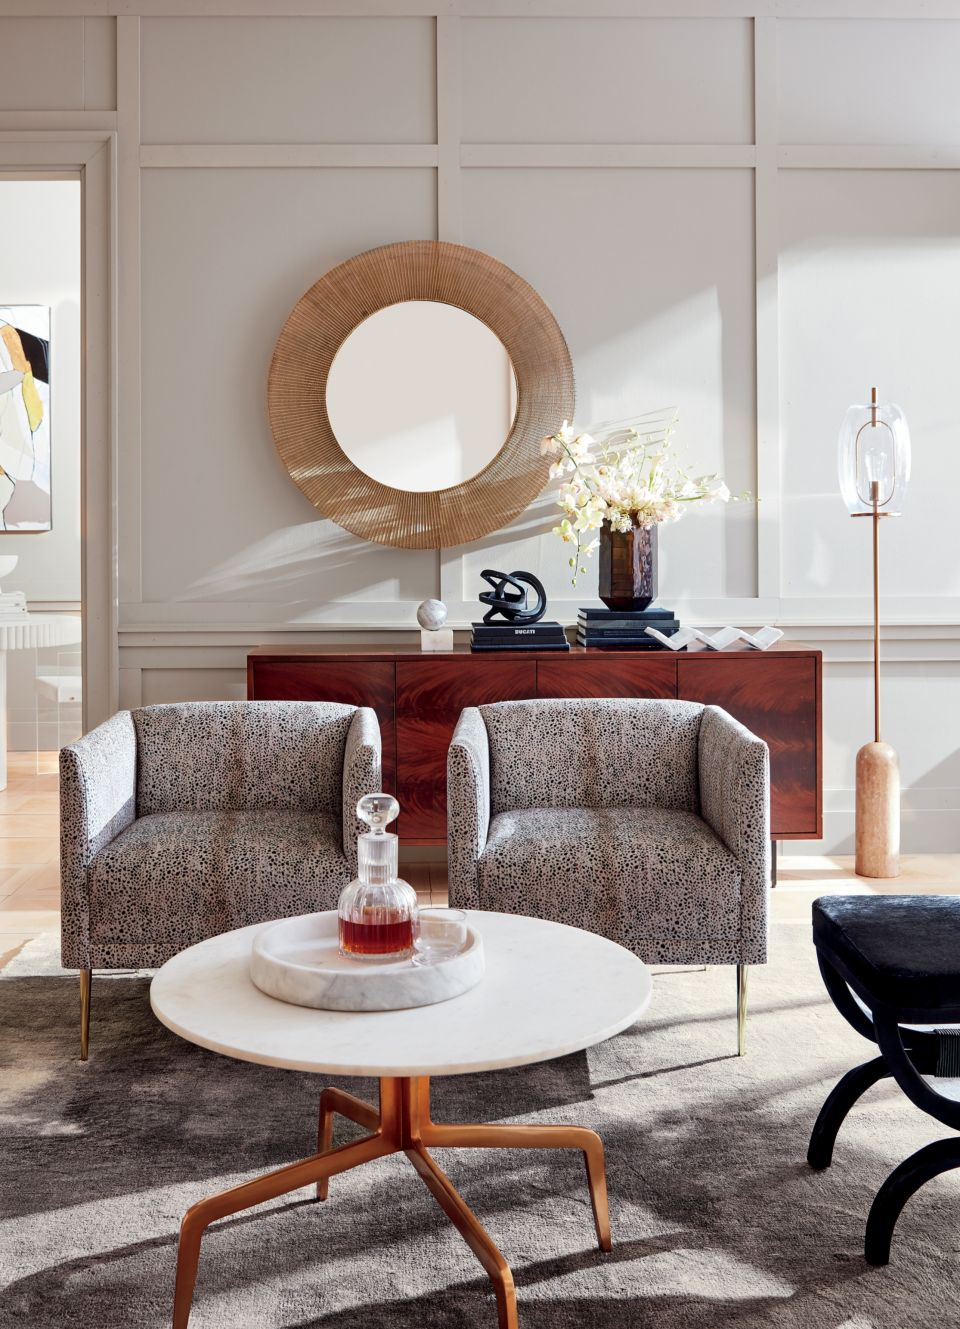 To see all of Michele Varian's current designs for CB2